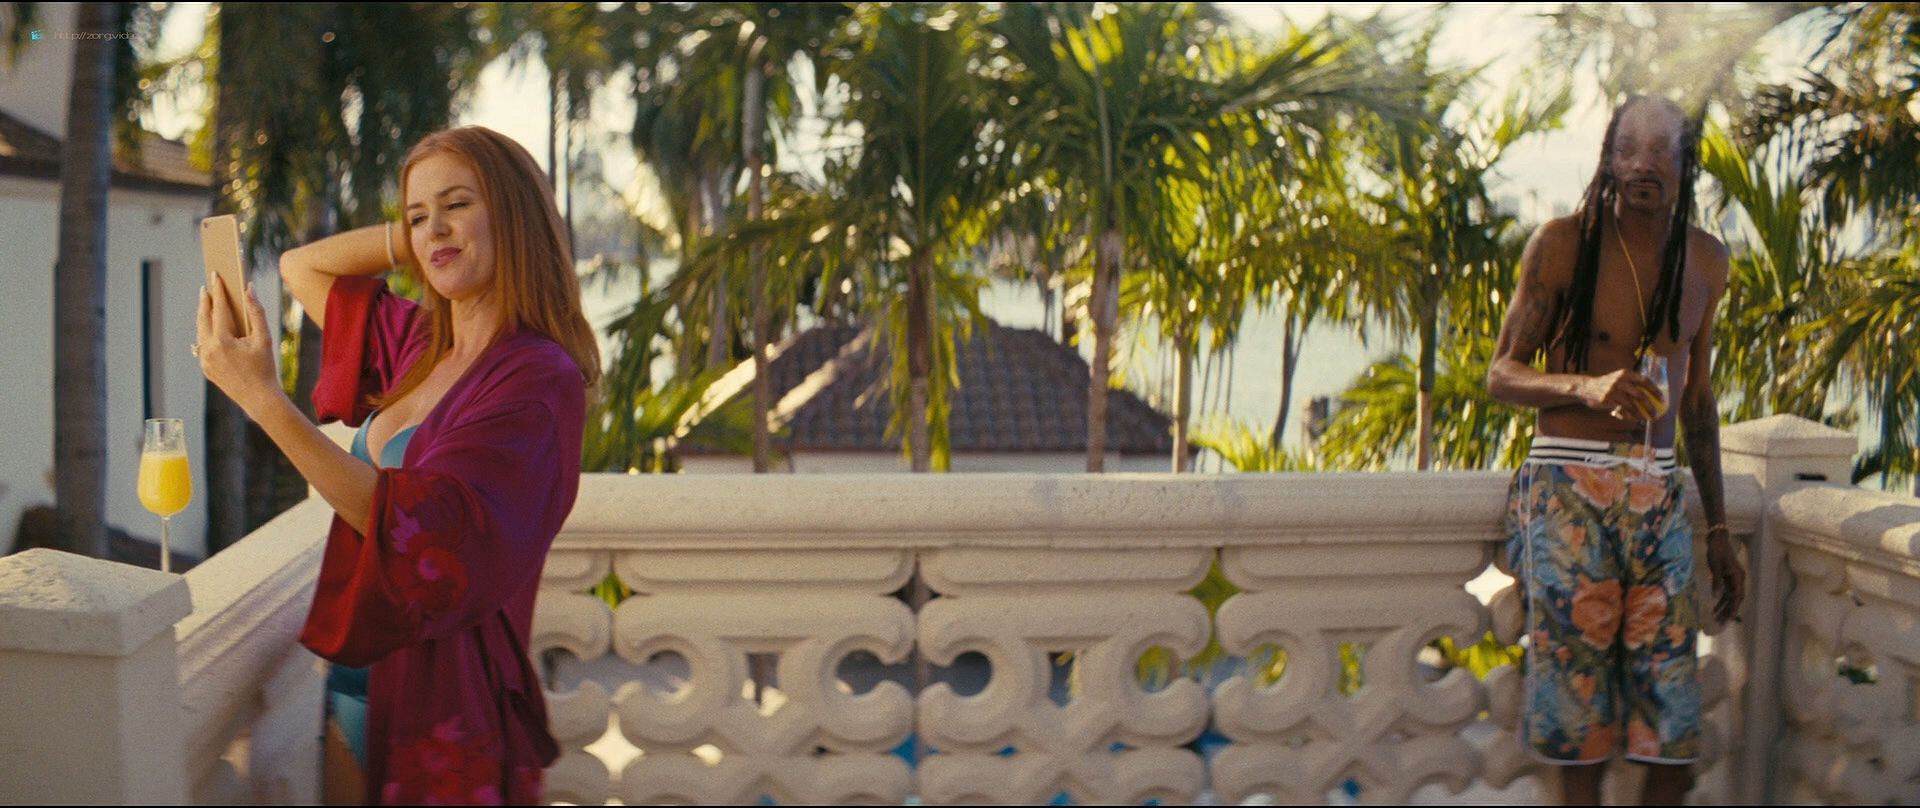 Isla Fisher hot and sexy others nude topless - The Beach Bum (2019) 1080p BluRay (5)